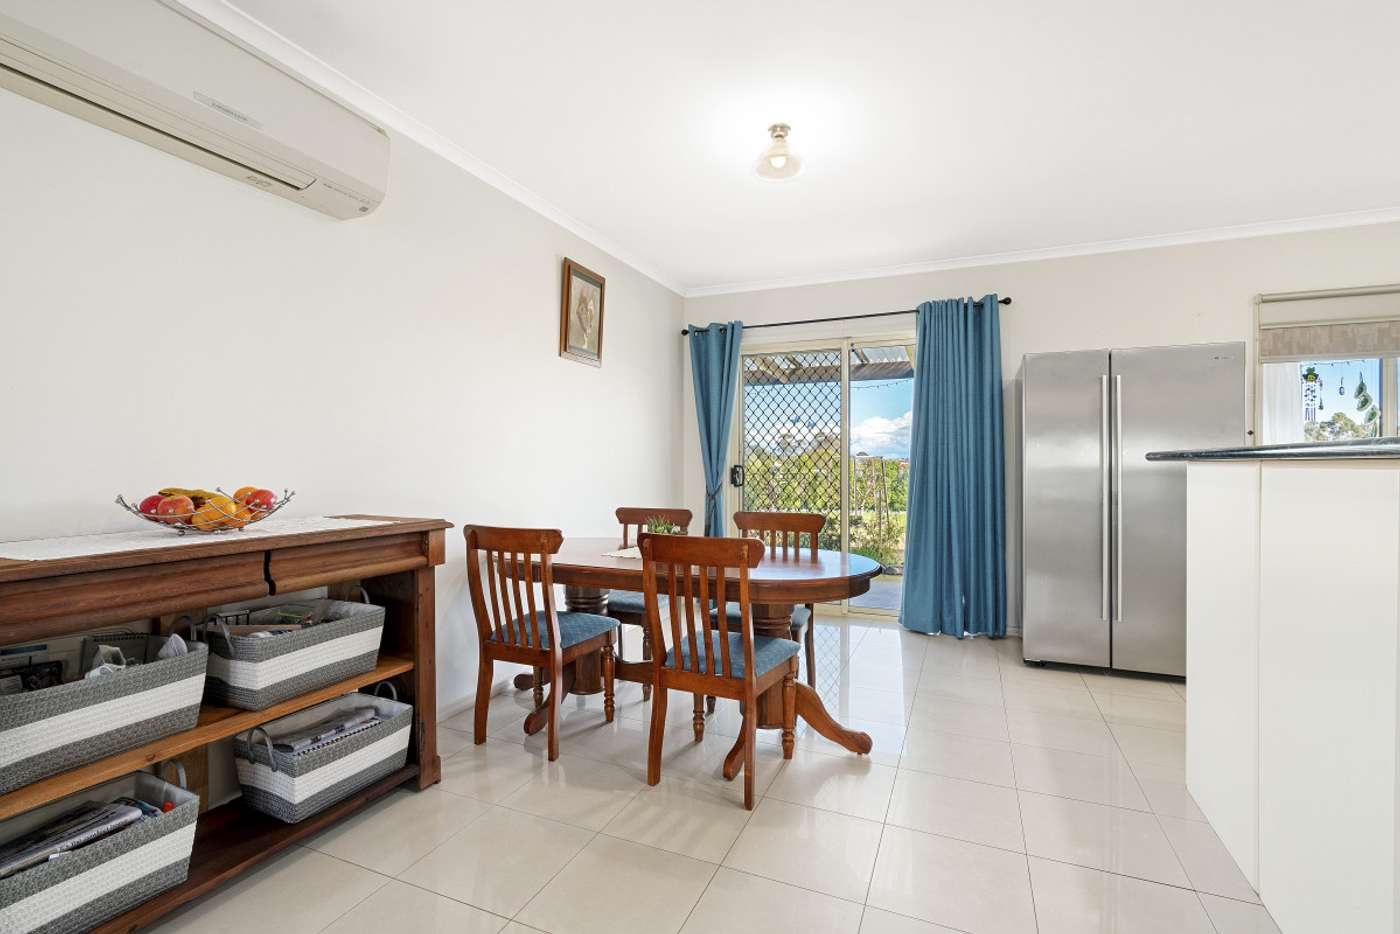 Sixth view of Homely house listing, 12 Galway Drive, Stratford VIC 3862